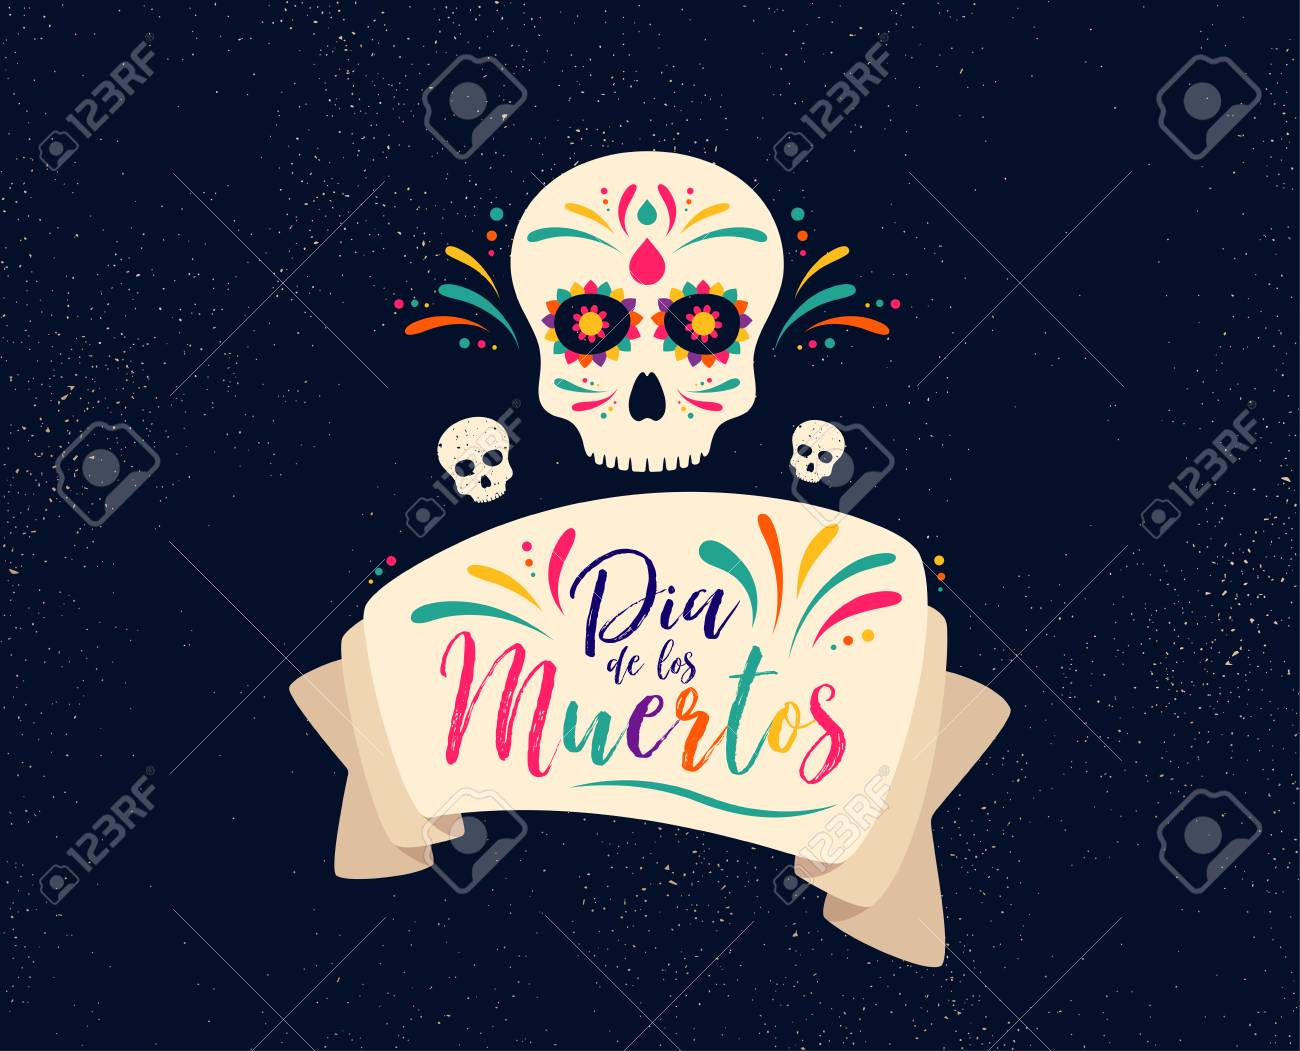 Dia de Muertos or day of the Dead. Skull banner for mexican celebration. Traditional mexico skeleton decoration with flowers and sugar skull colorful art. Day dead holiday. Vector - 111104019